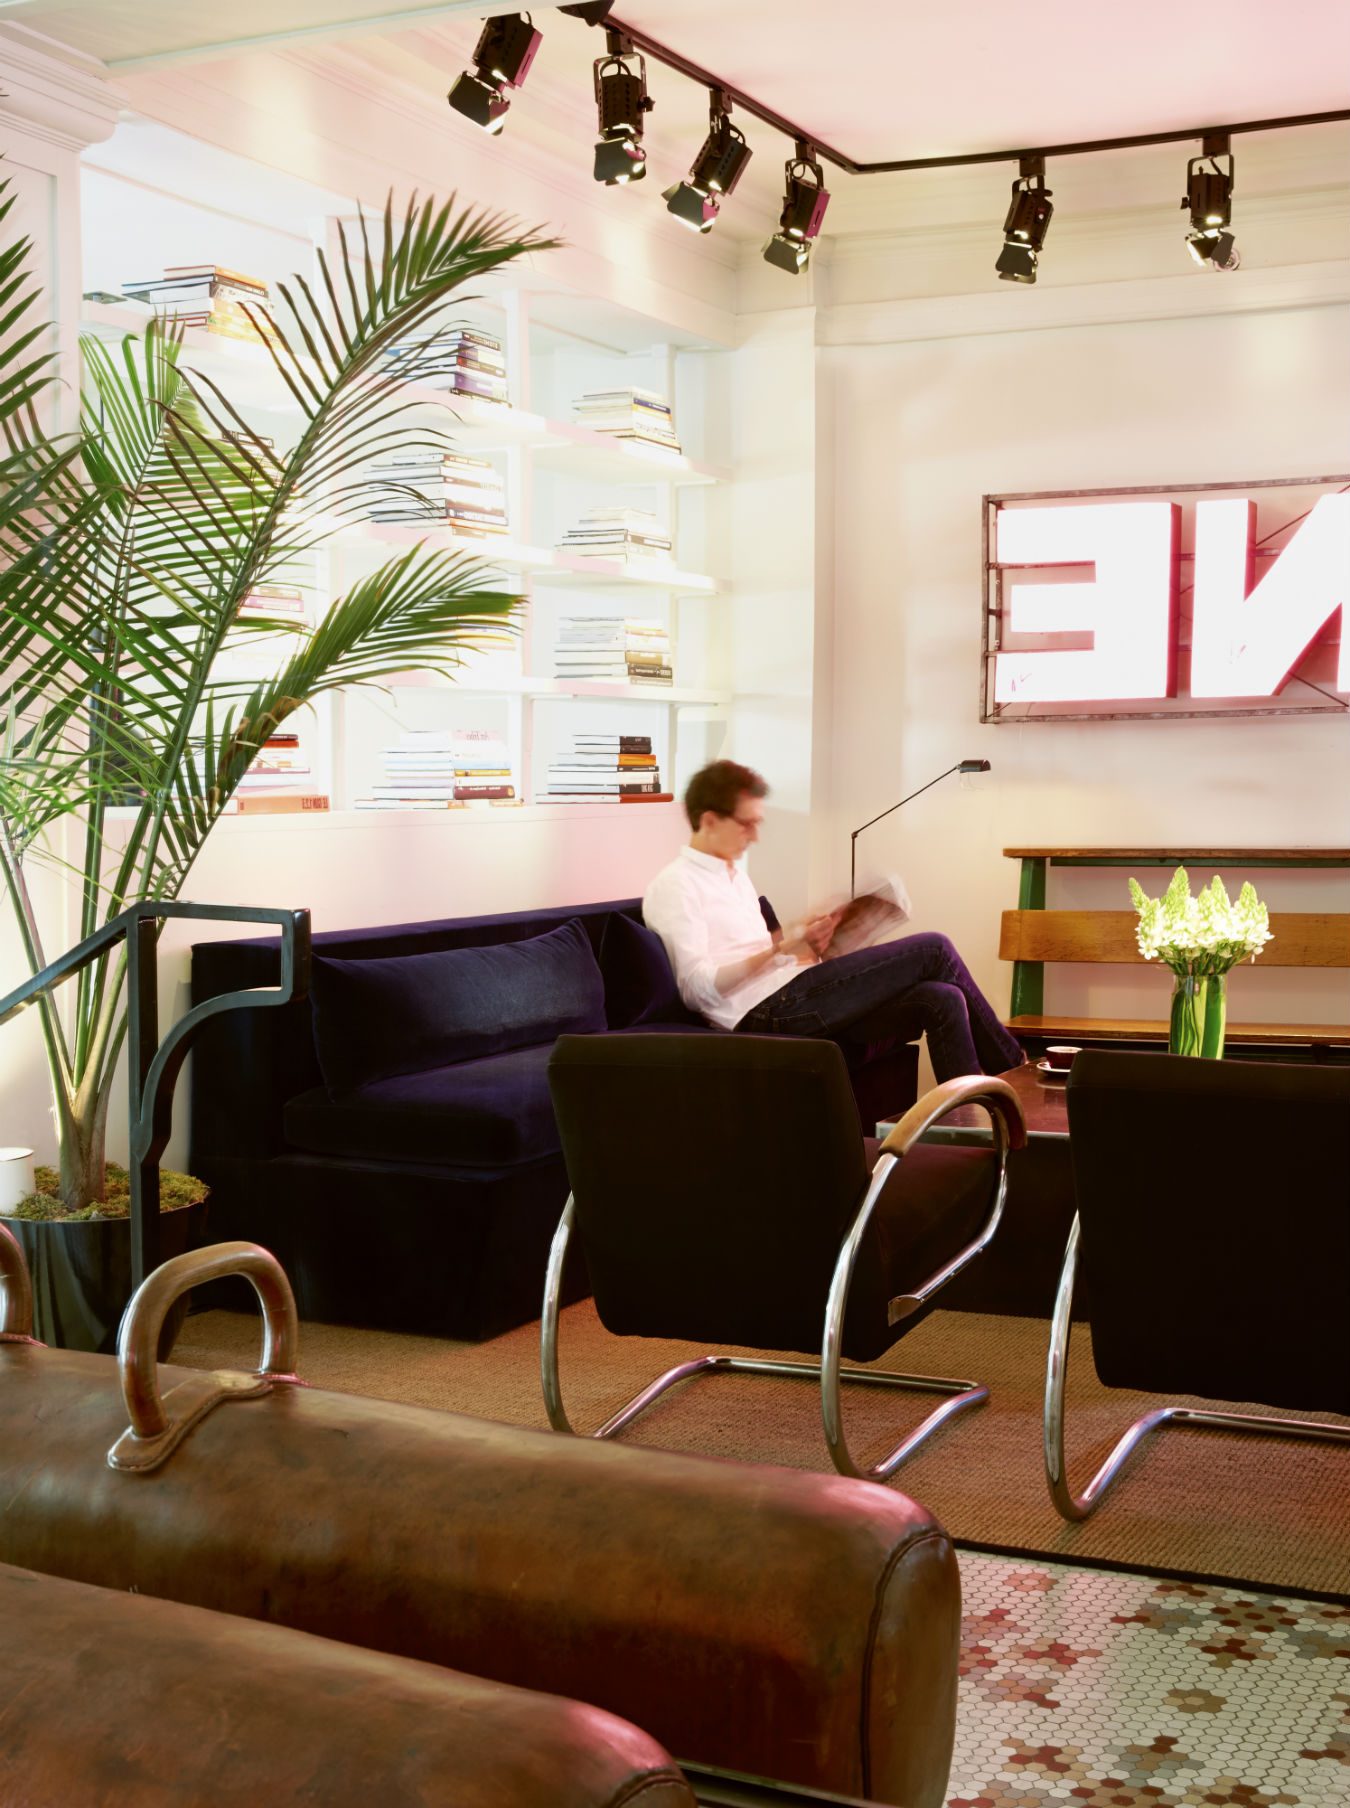 NUVO Daily Edit: The Dean Hotel